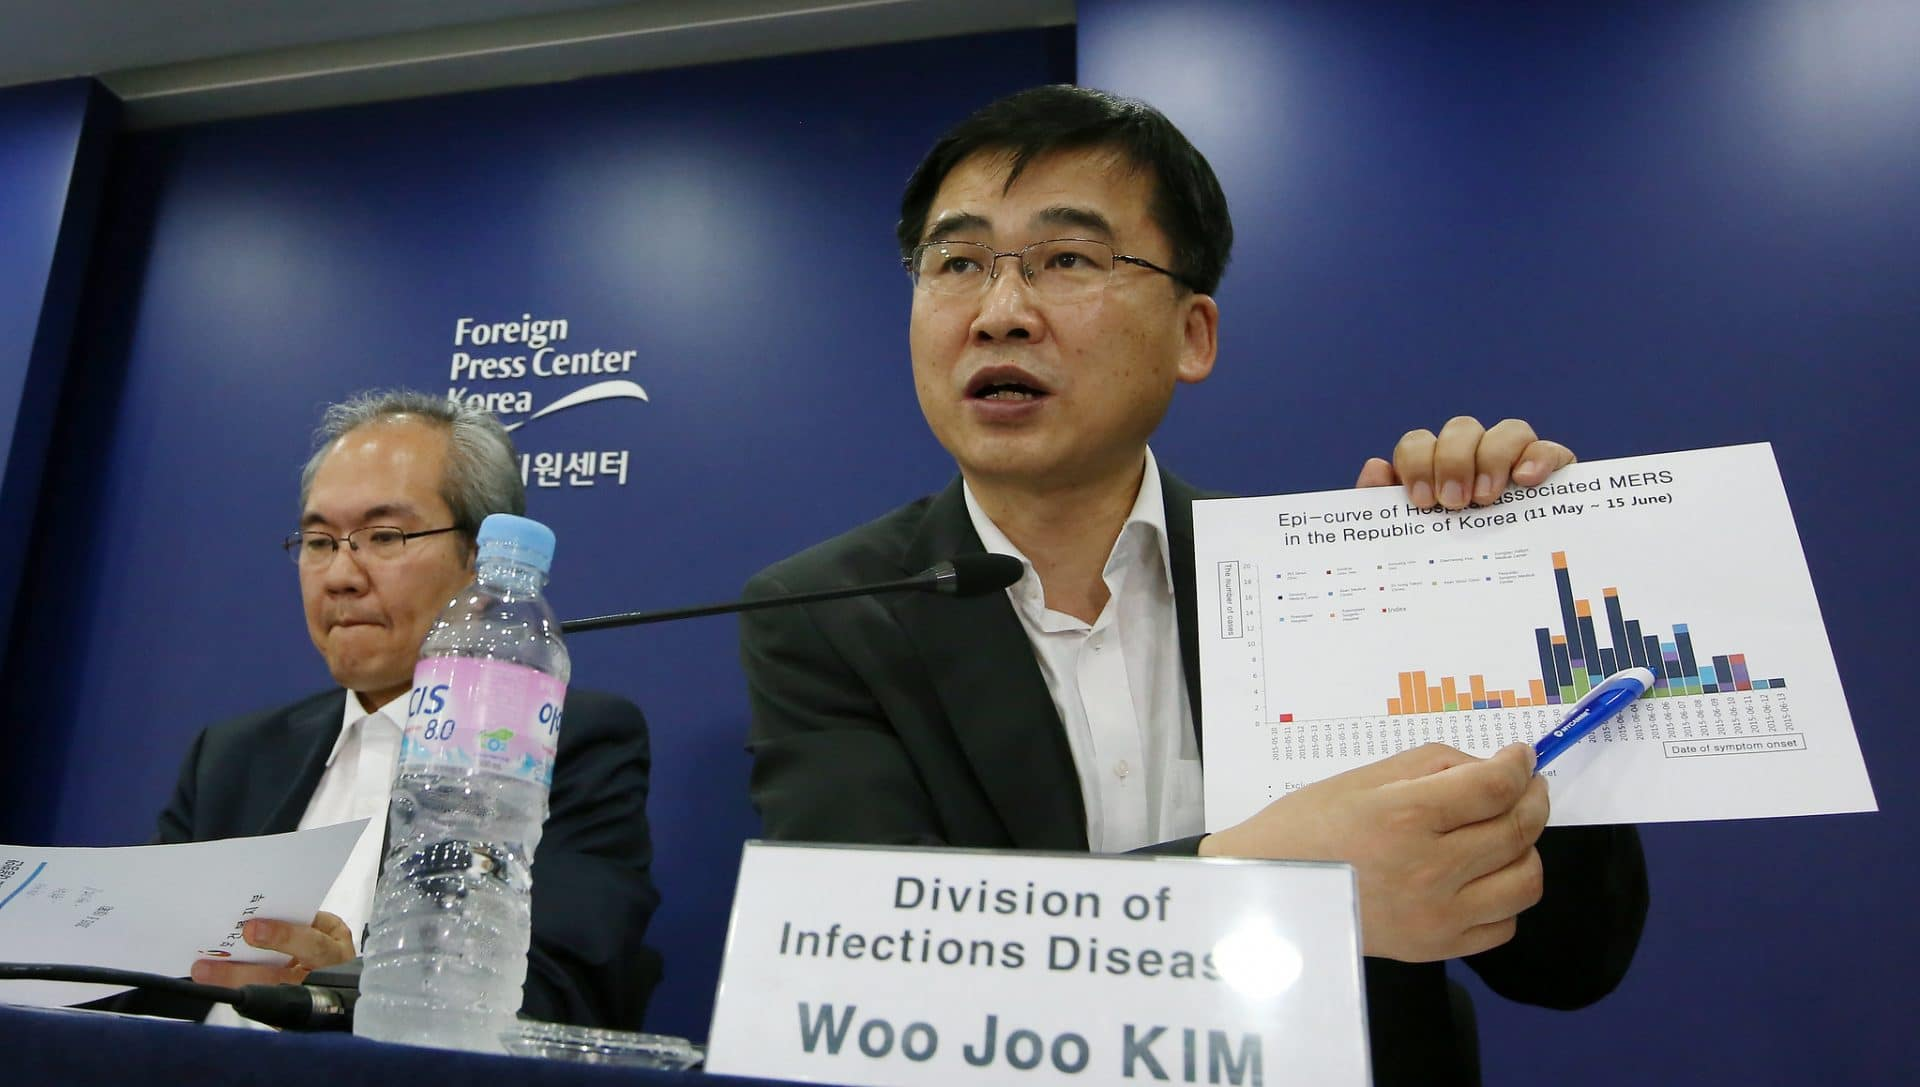 Korean health officials discuss the 2015 MERS outbreak.